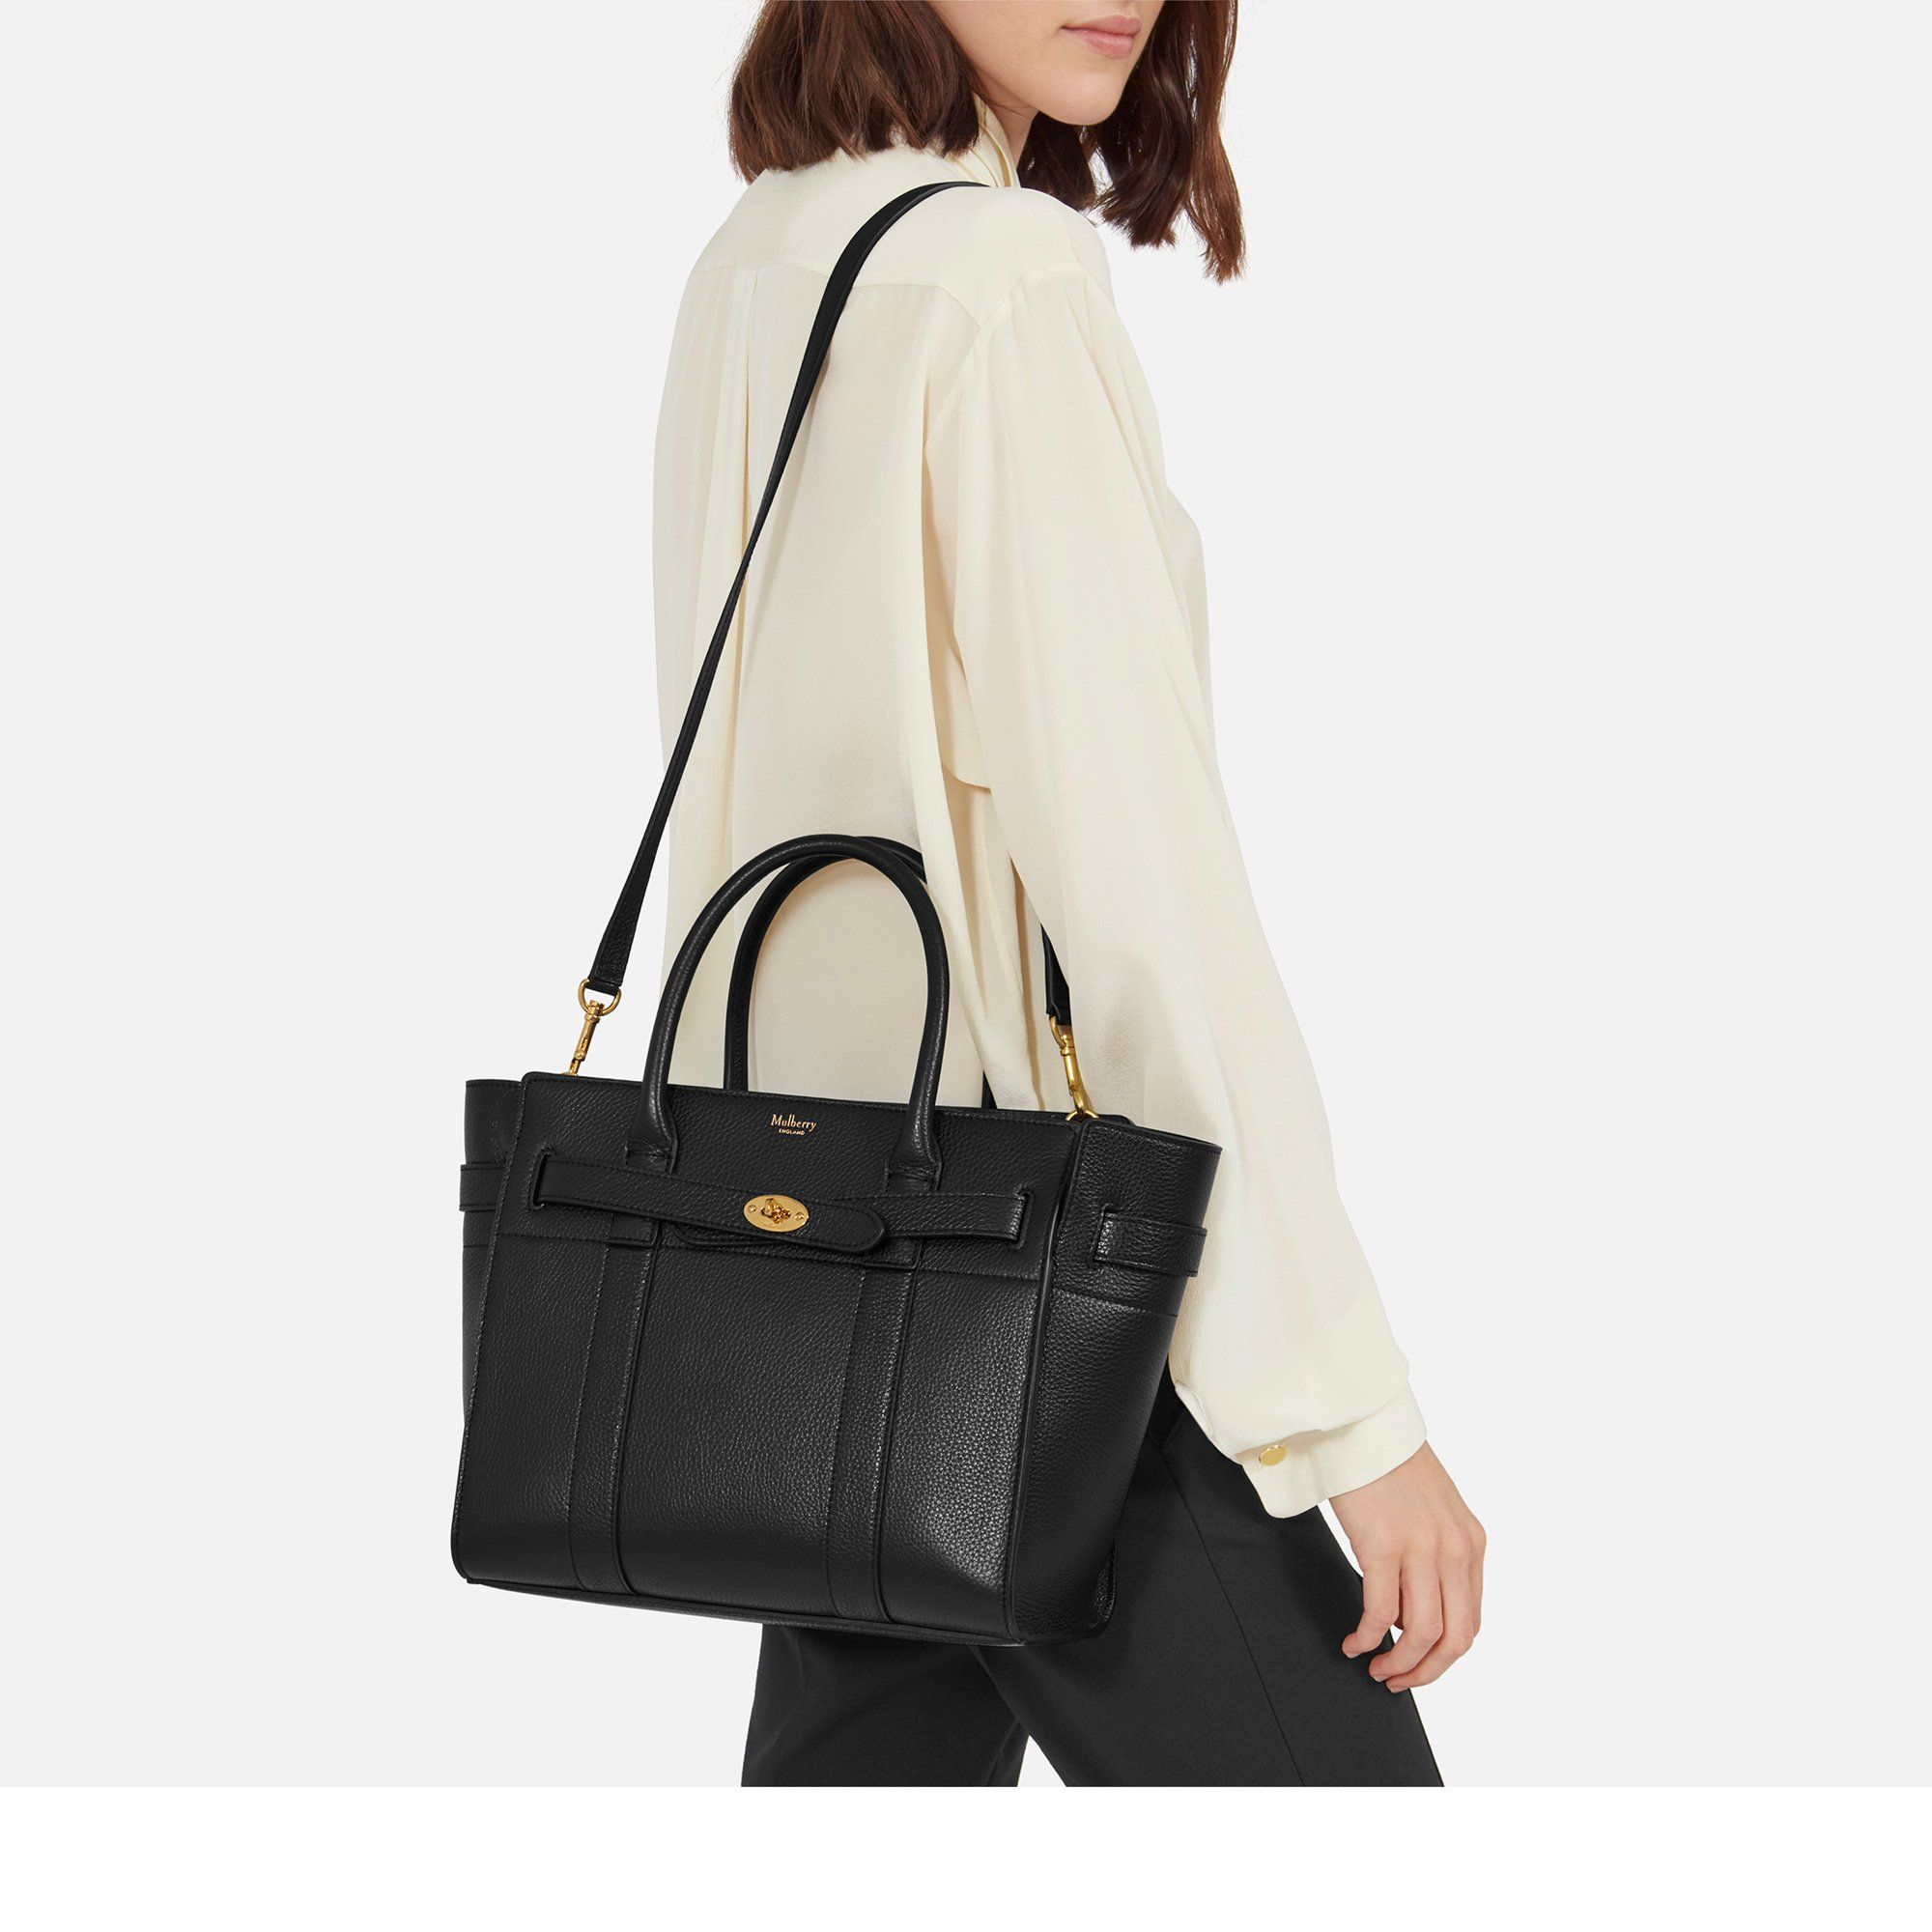 Mulberry New Bayswater small tote